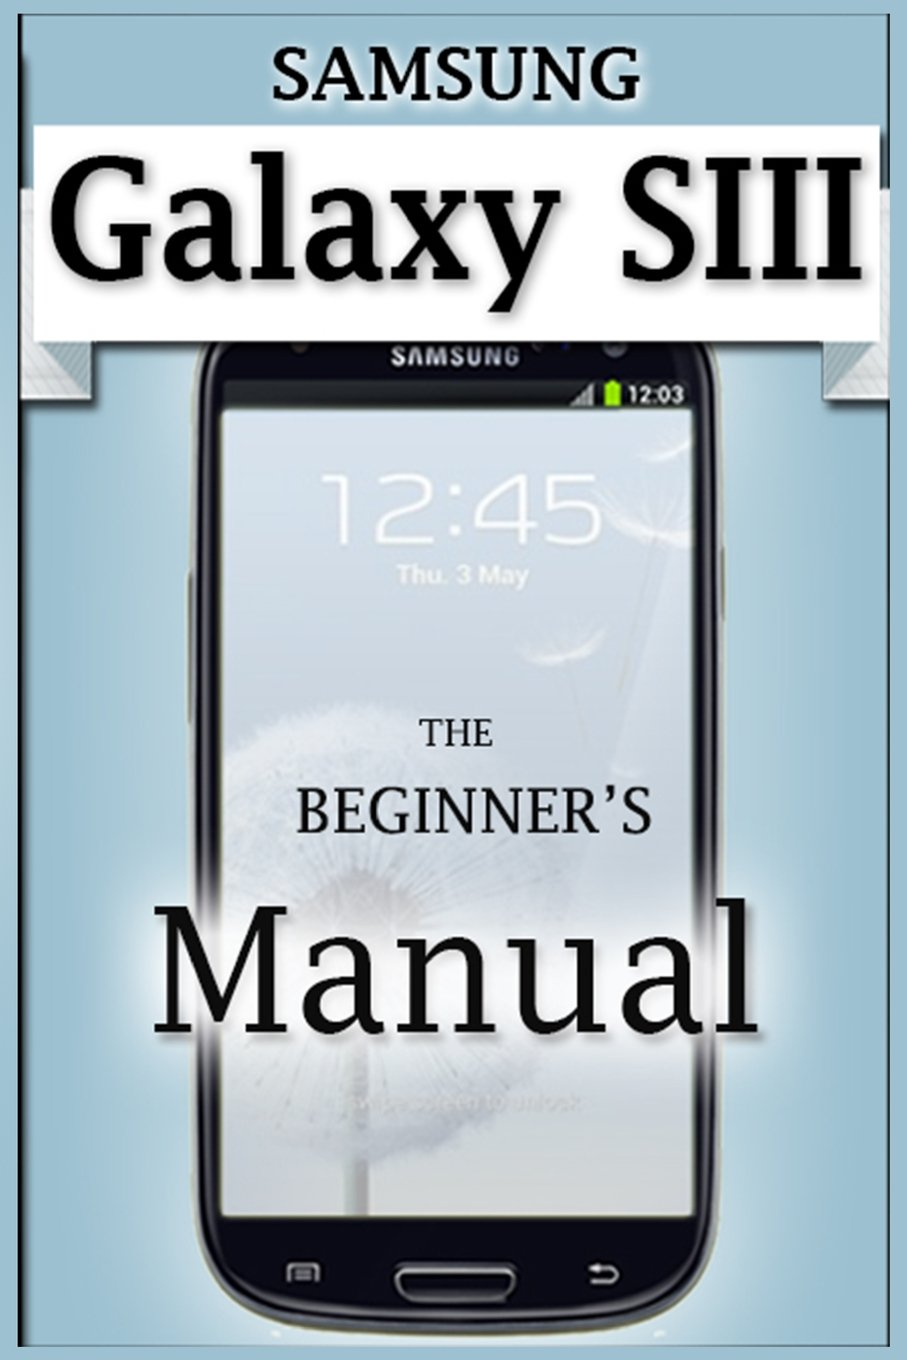 Buy Samsung Galaxy S3 Manual: The Definitive Samsung S3 User Guide Book  Online at Low Prices in India | Samsung Galaxy S3 Manual: The Definitive Samsung  S3 ...